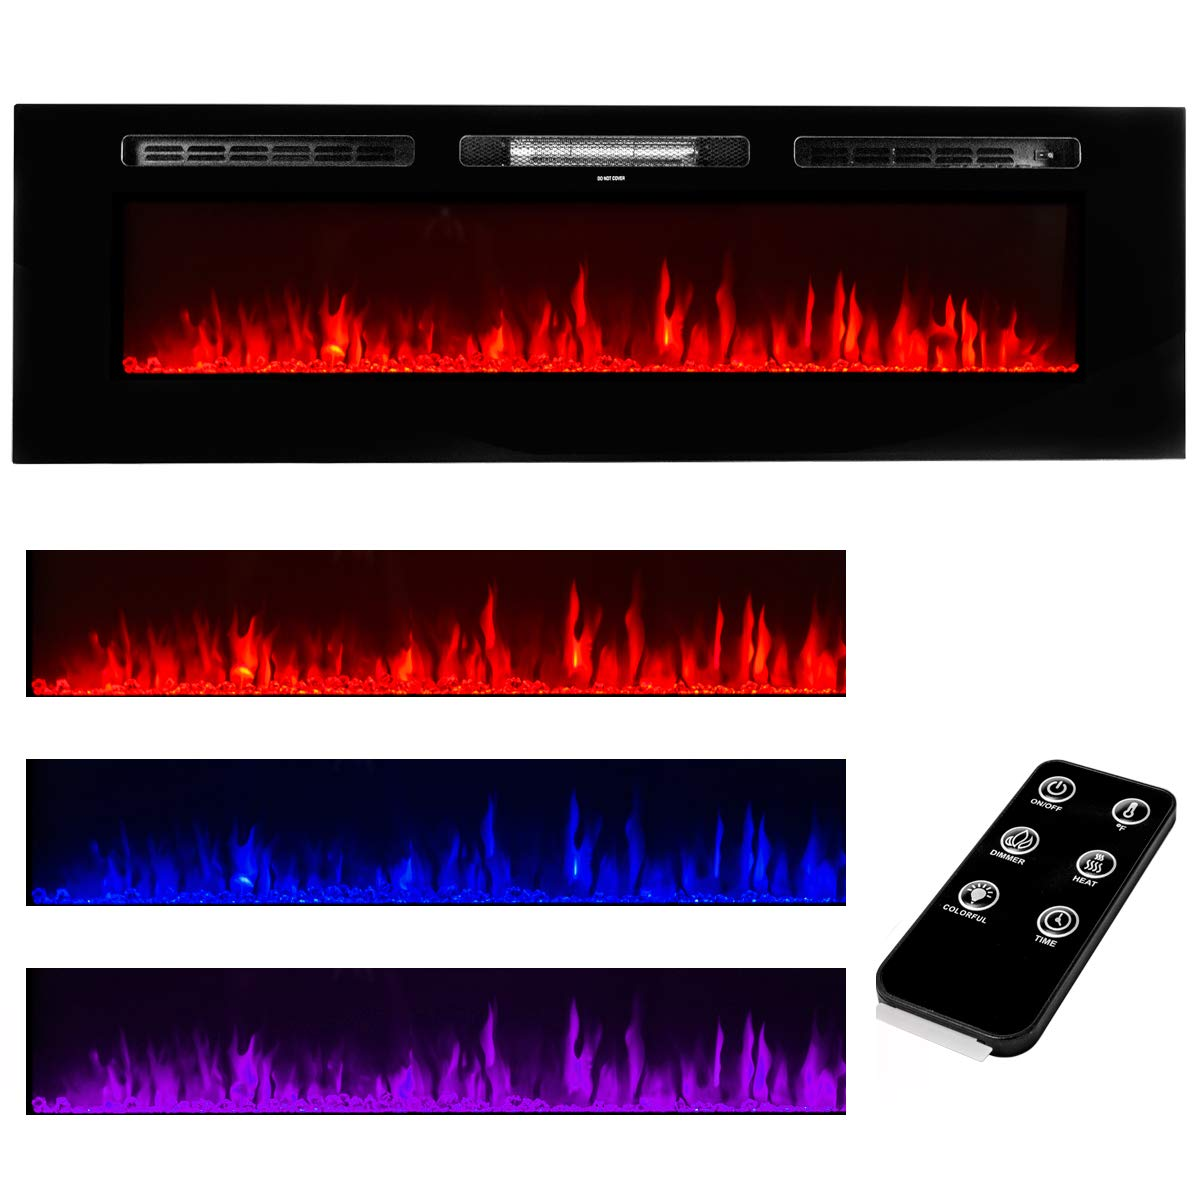 XtremepowerUS 60 Large Recessed Electric Fireplace Wall Mounted Electric Insert Heater Fireplace Color Flame Remote Control, 1500W